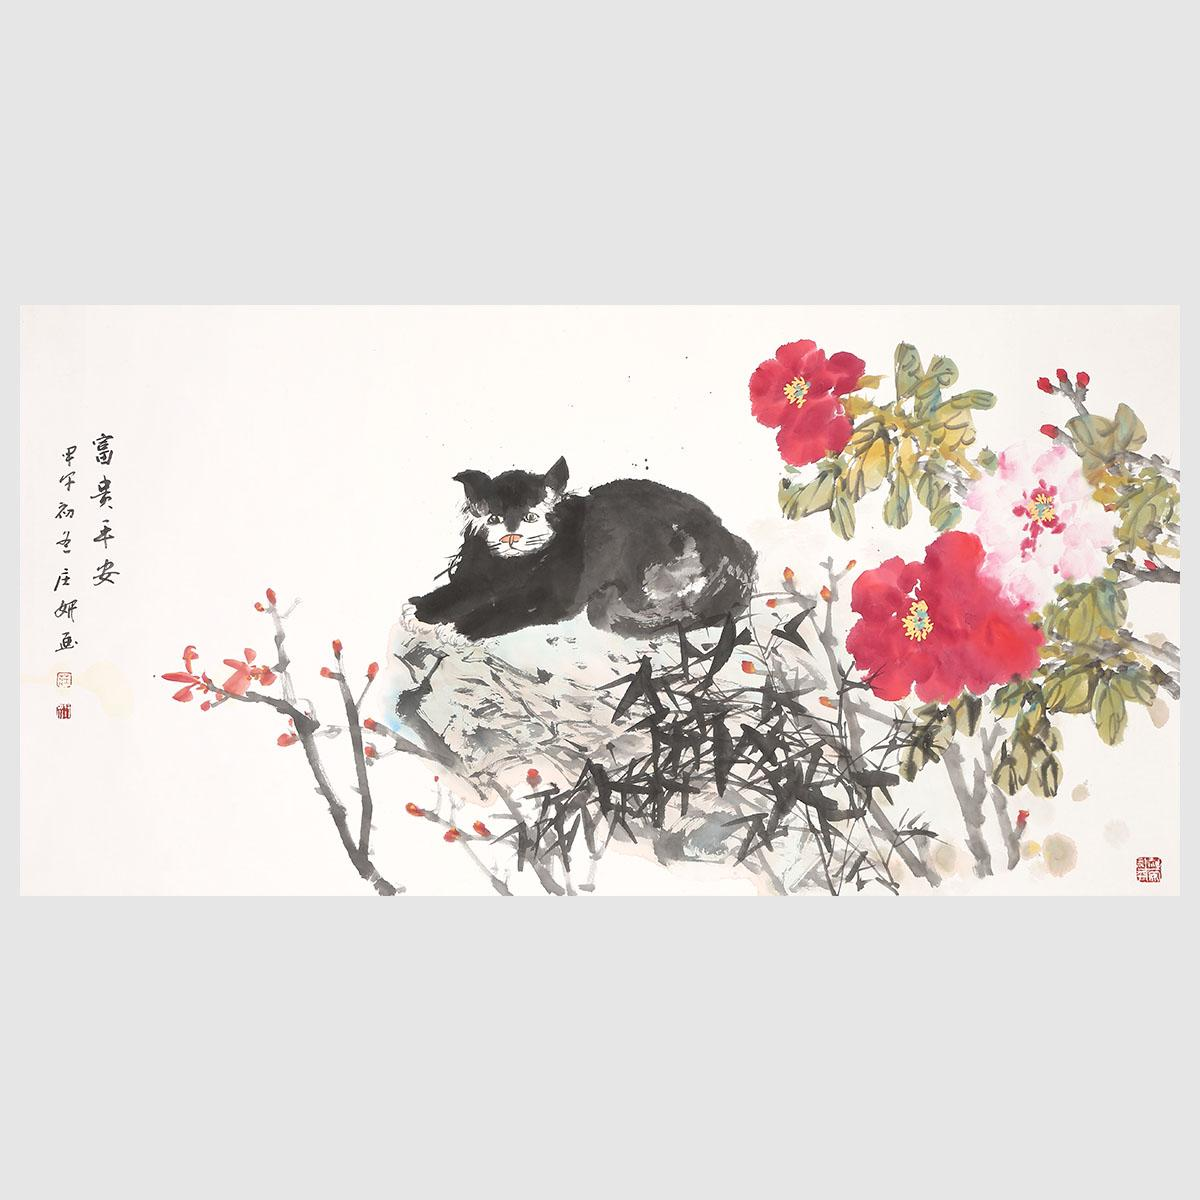 c51875fdc04c7 Peony and Lazy Cat Flower Painting Vivid Flower Print Wall Art Painting  Decor for Home Decoration Hanging Artwork